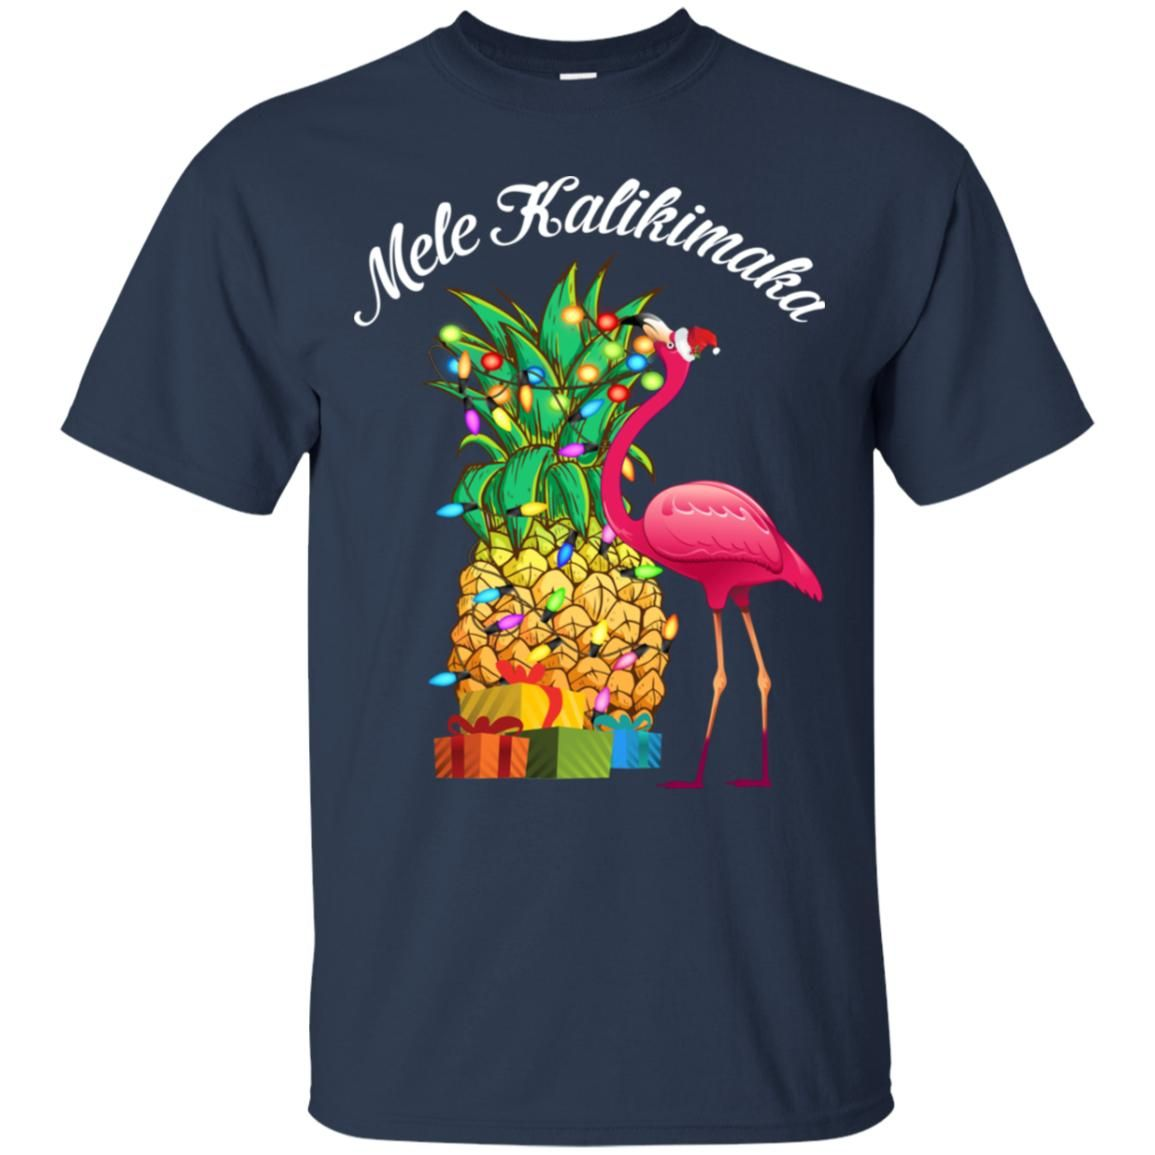 19.95 USD ;  Mele Kalikimaka Pineapple Flamingo Halloween T Shirt ;  Mele Kalikimaka Pineapple Flamingo Halloween T Shirt #MeleKalikimakaPineappleFlamingoHalloweenT #MeleKalikimakaPineappleFlamingoHalloween #MeleKalikimakaPineappleFlamingo #MeleKalikimakaPineapple #MeleKalikimaka #Mele #Mele #Kalikimaka #Pineapple #Flamingo #Halloween #T #Shirt #T-Shirt